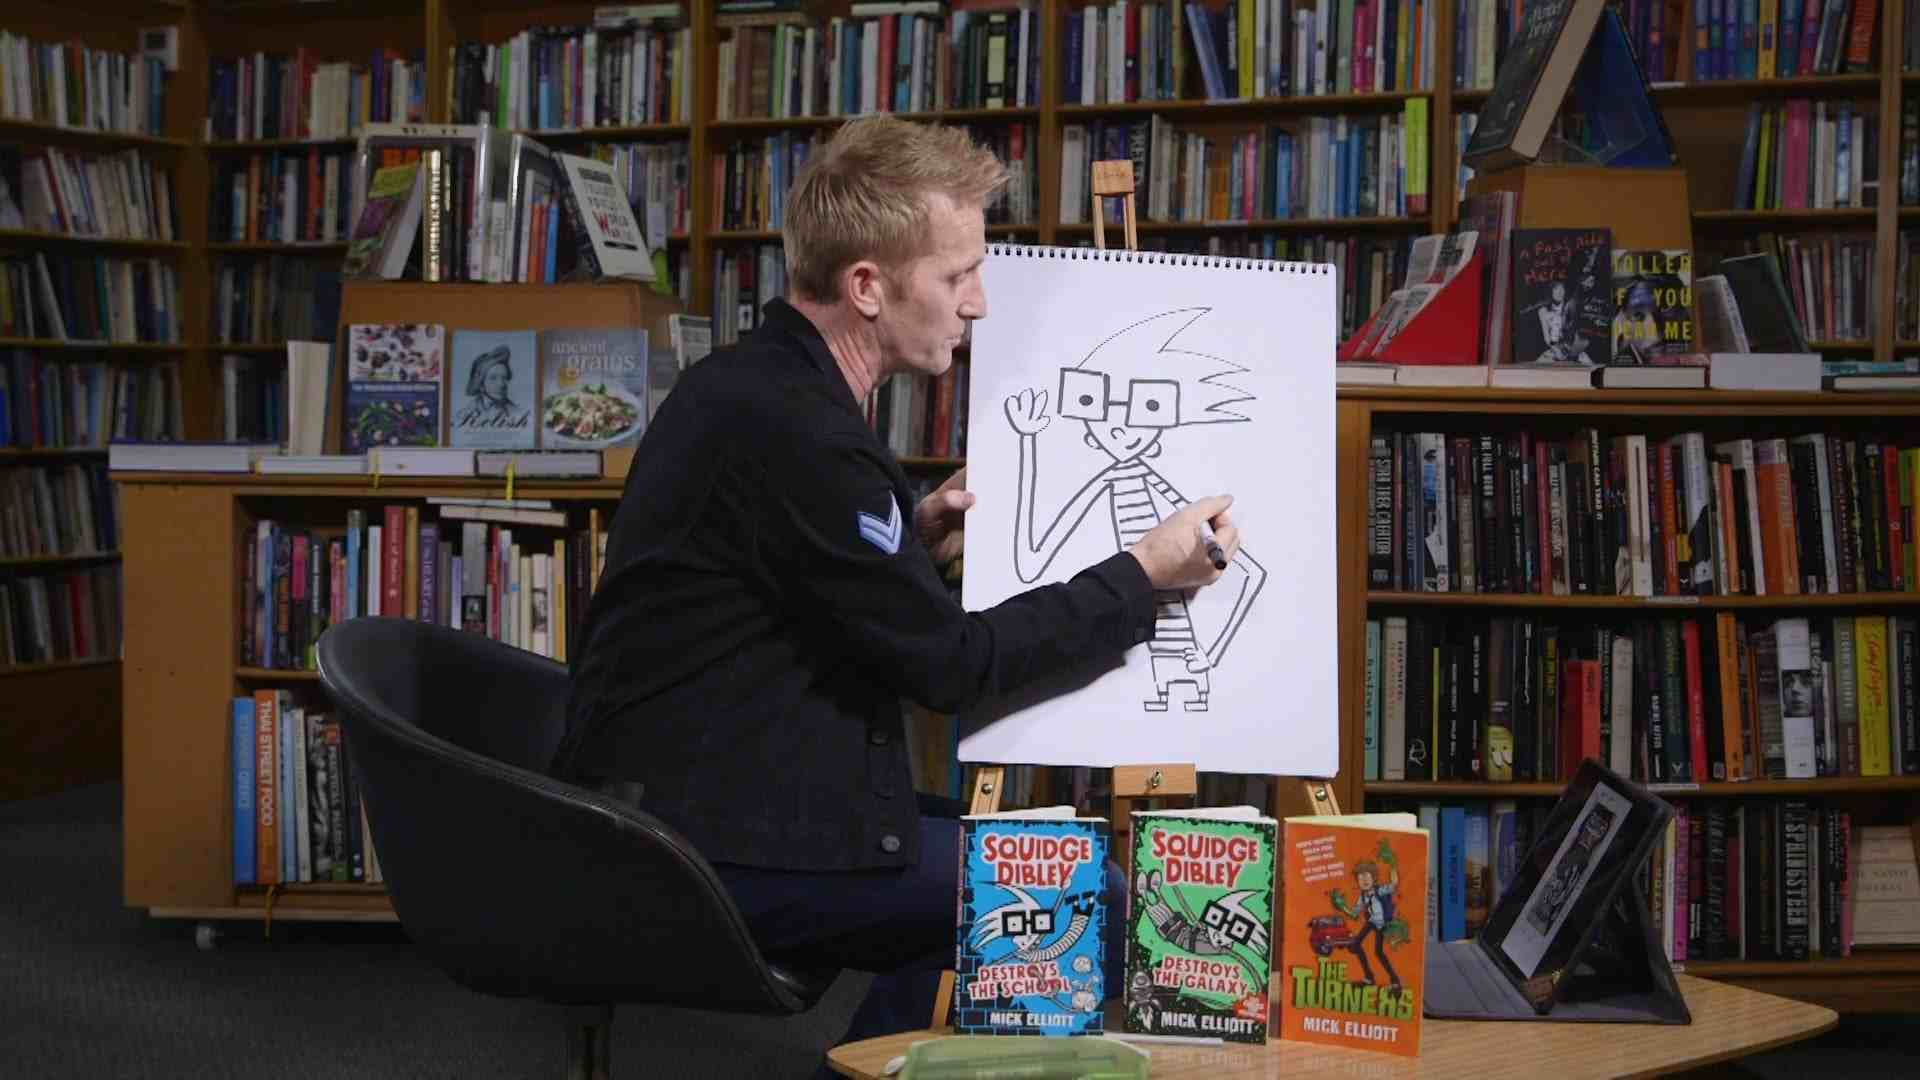 NSW Premier's Reading Challenge and ARTEXPRESS collection 1